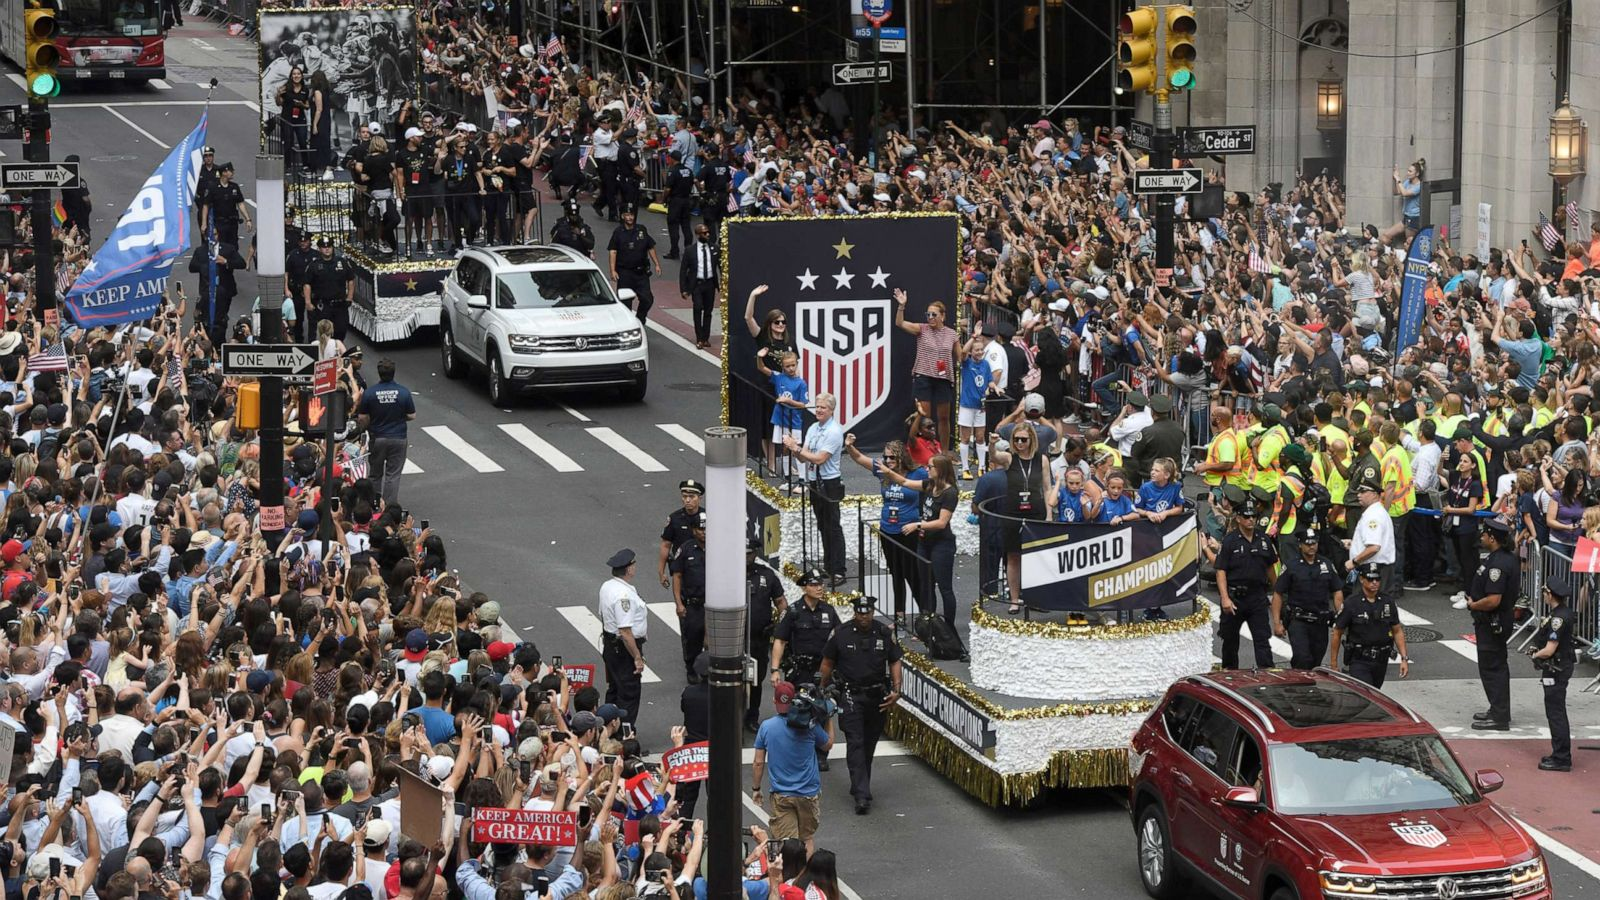 US women's soccer World Cup ticker tape parade marked by